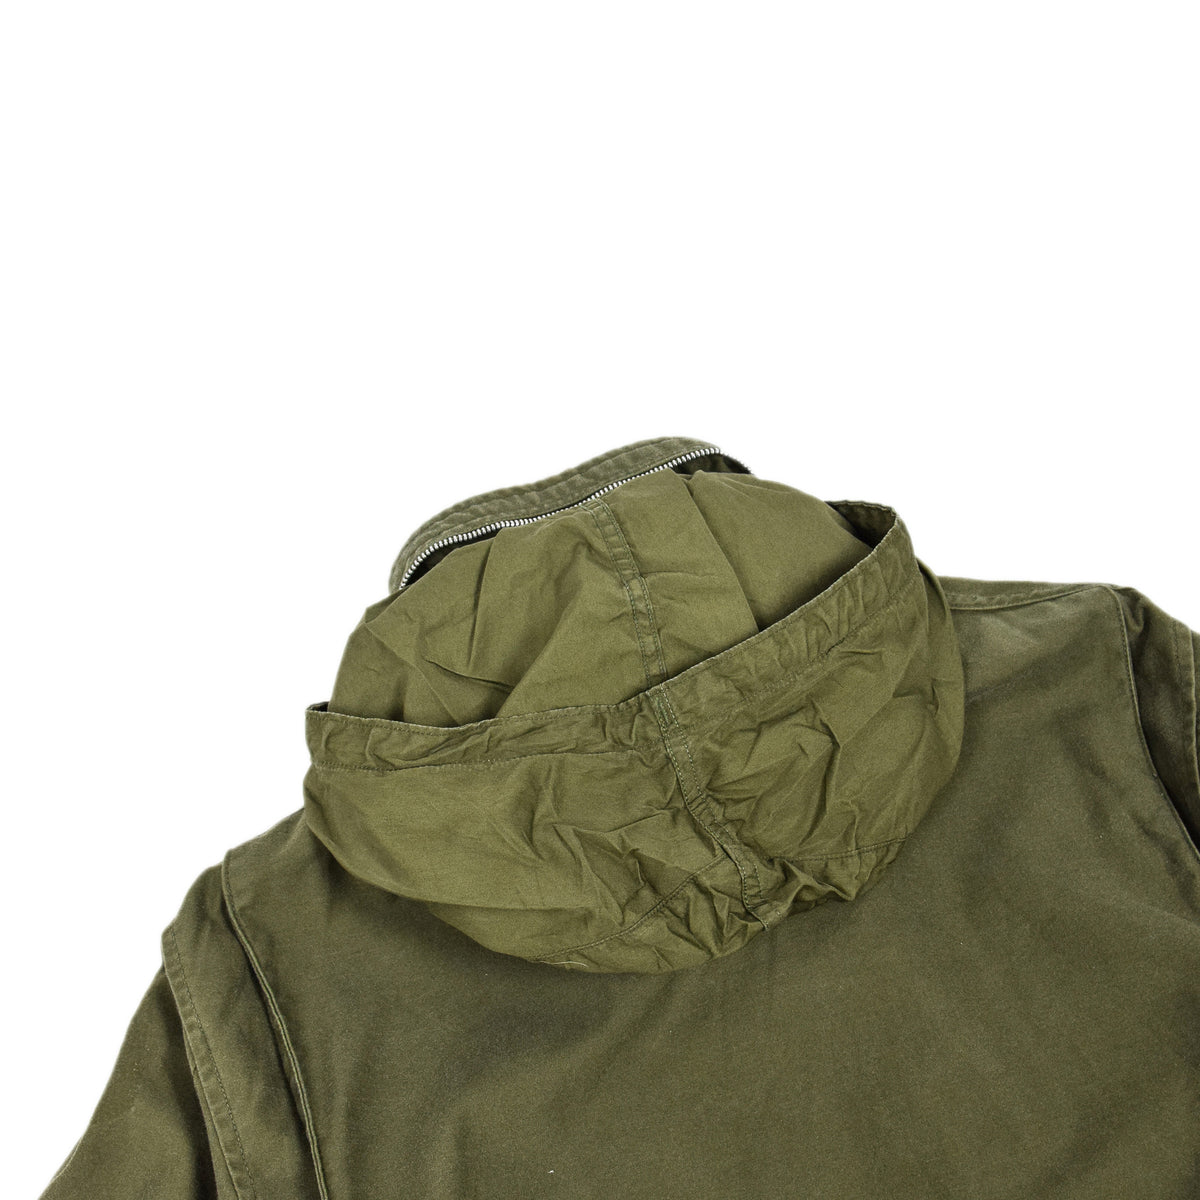 Vintage 60s Vietnam M-65 Man's Field Sateen 0G-107 Green US Army Coat M Short hood